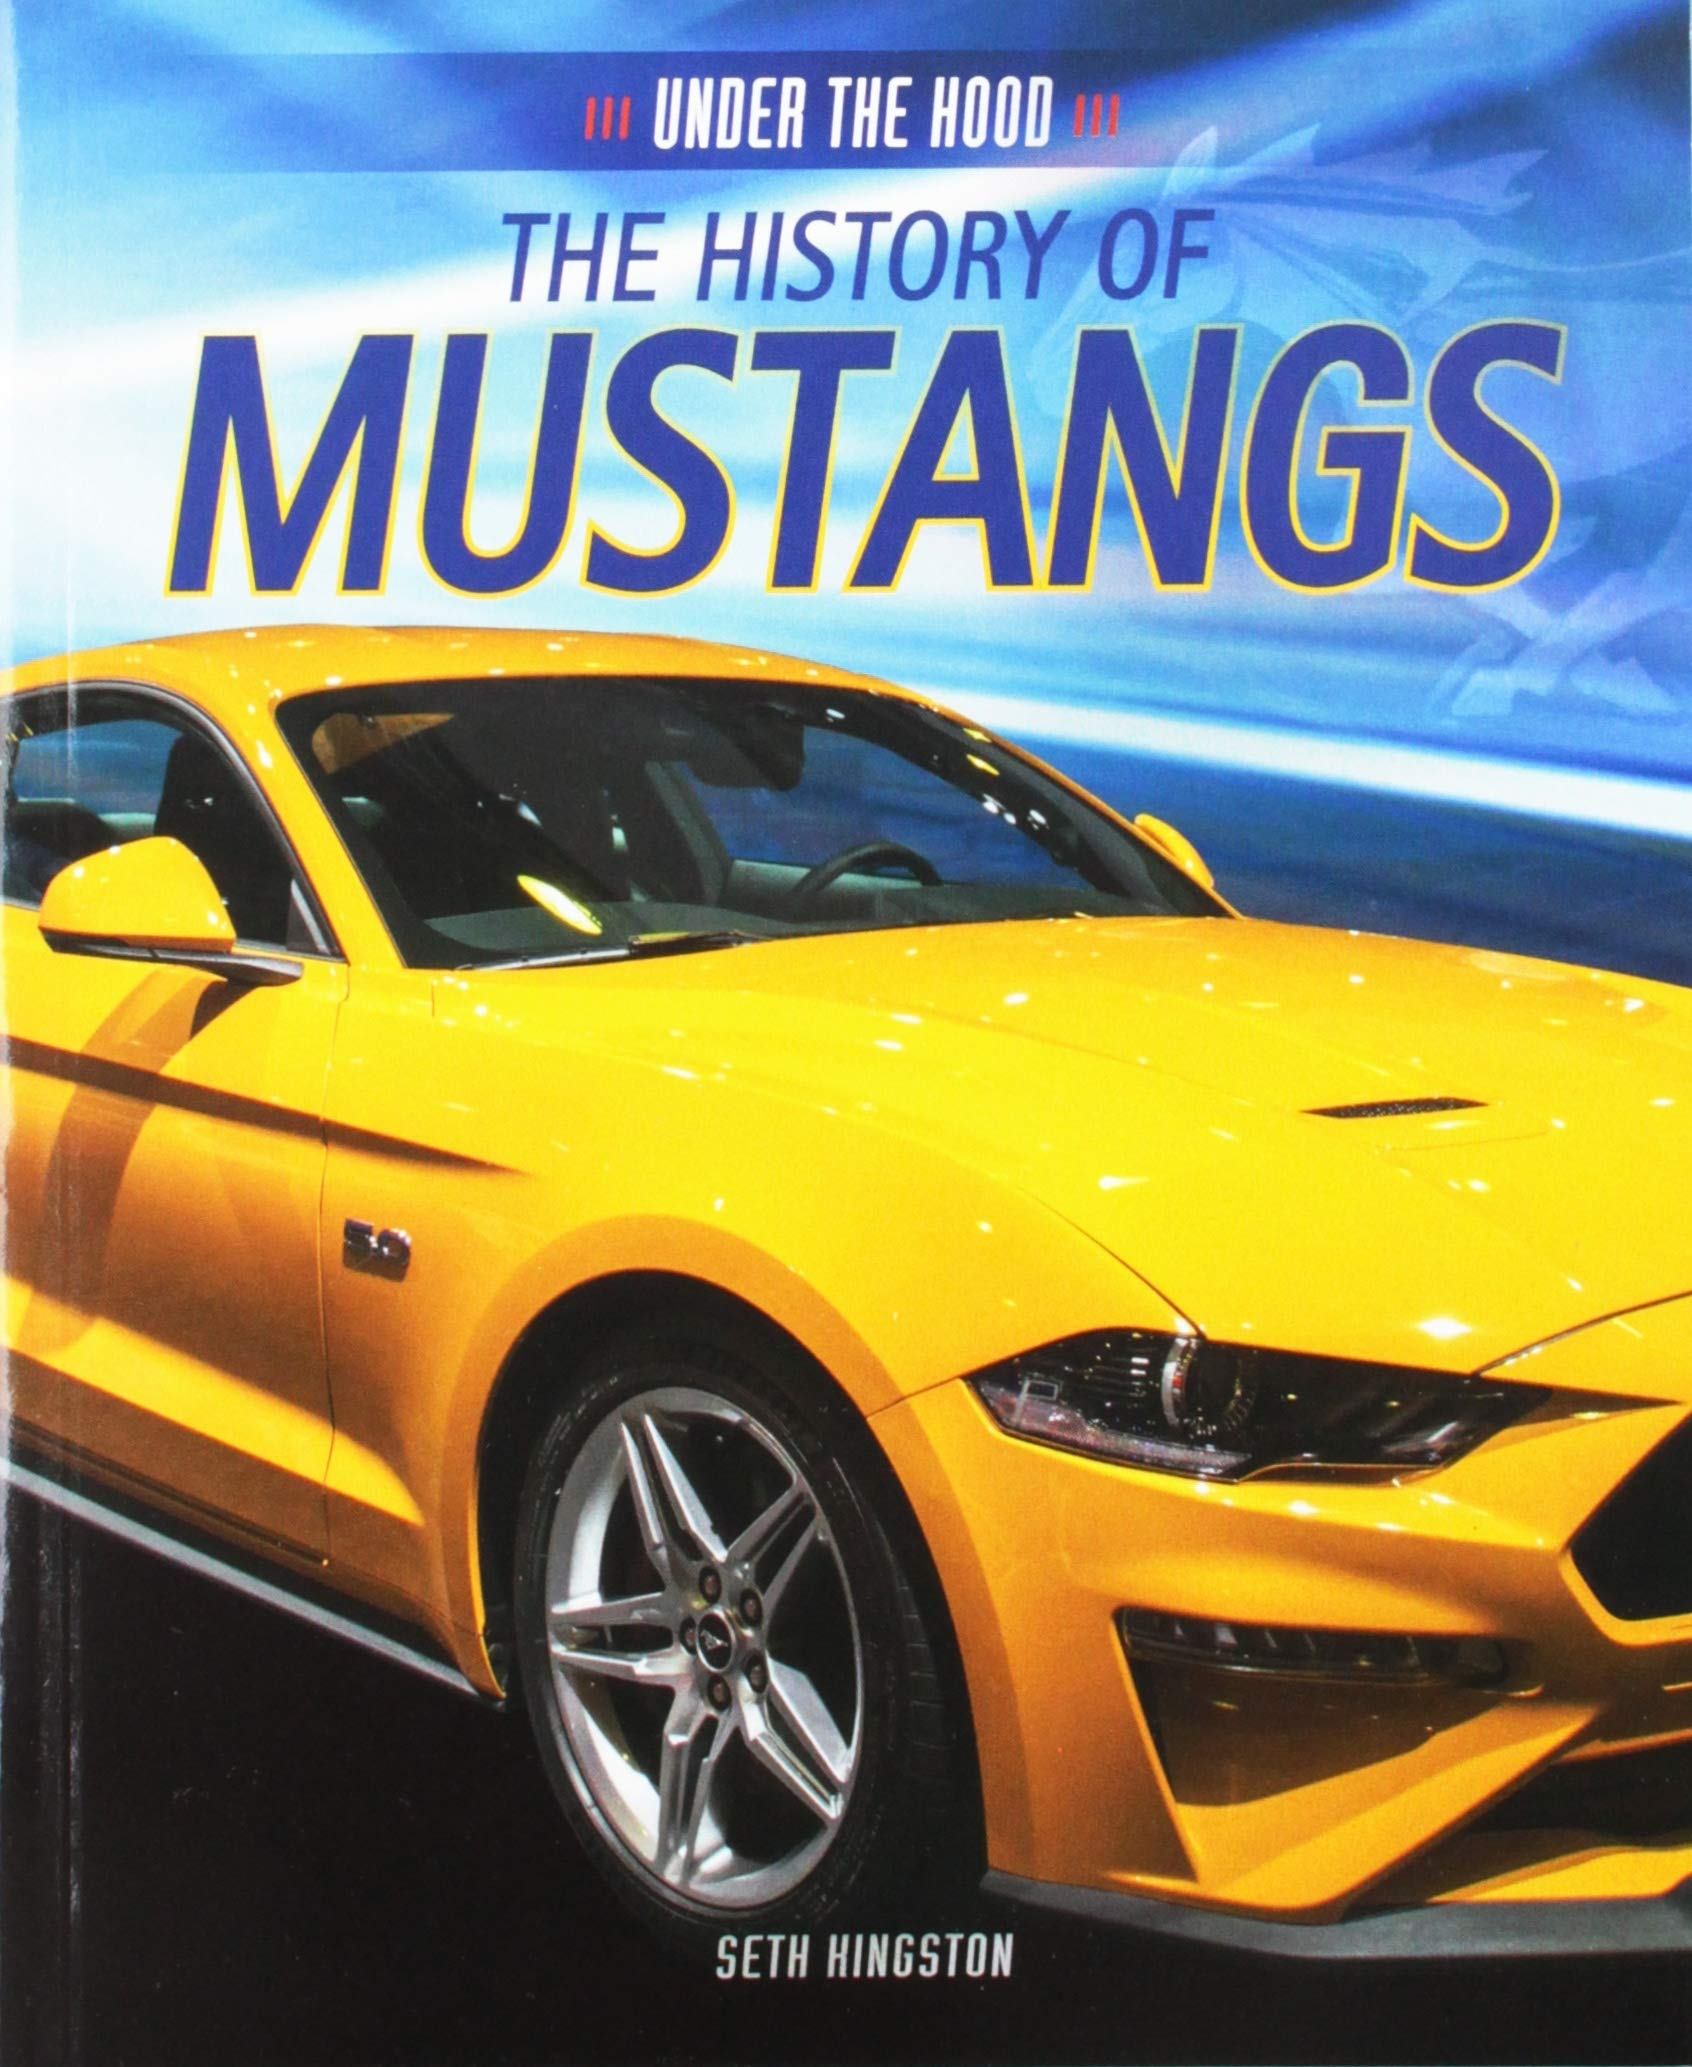 The History of Mustangs (Under the Hood)